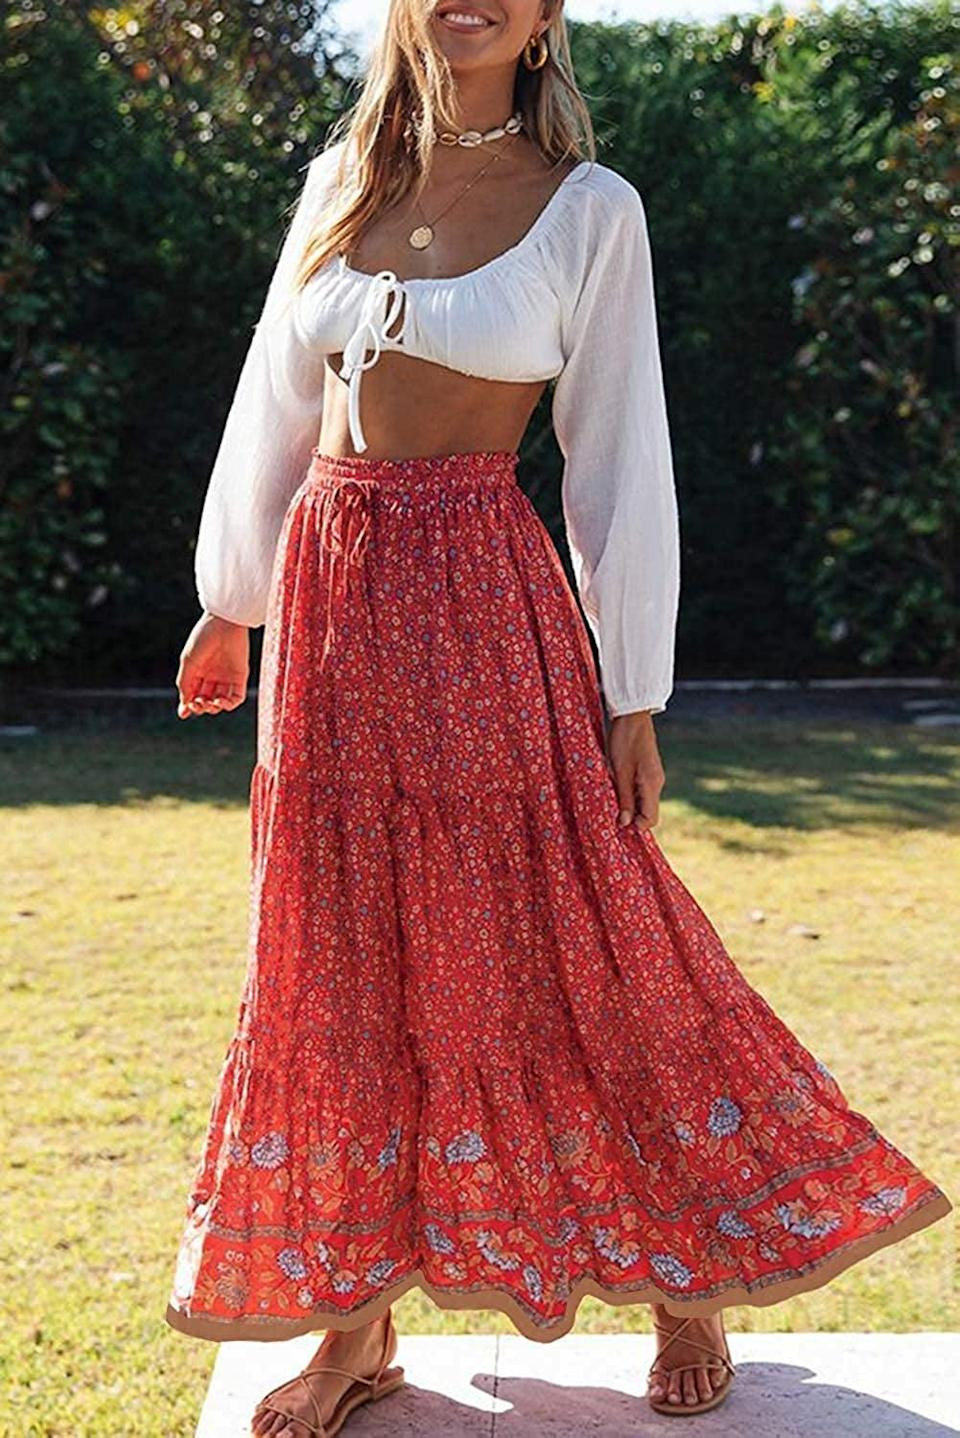 <p>Spend your summer in this flowy <span>Zesica Floral Printed Maxi Skirt</span> ($18-$29).</p>